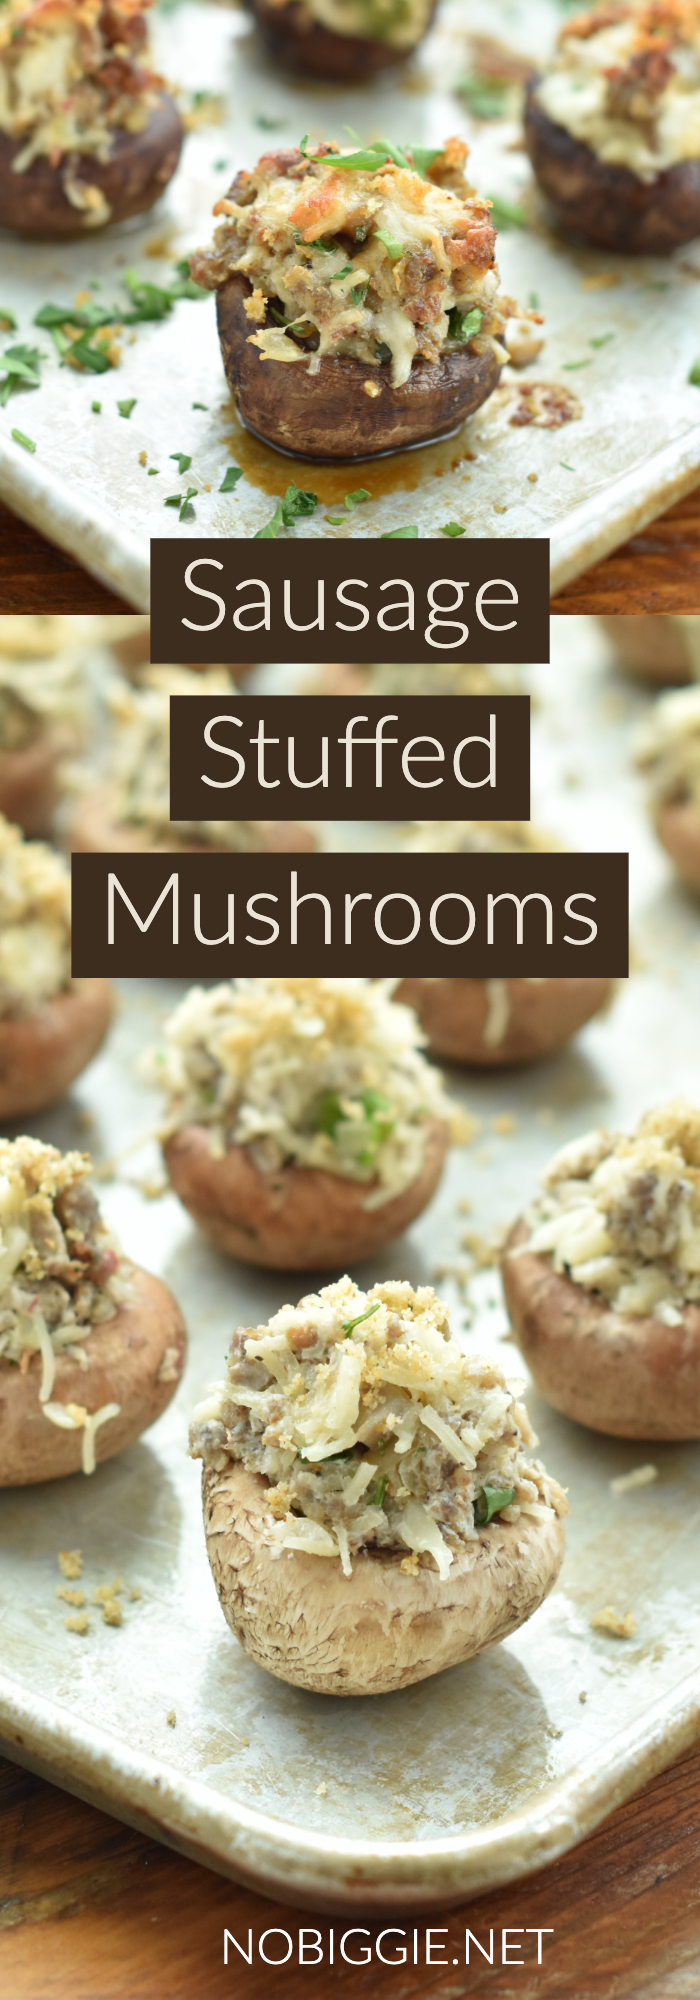 stuffed mushrooms | NoBiggie.net